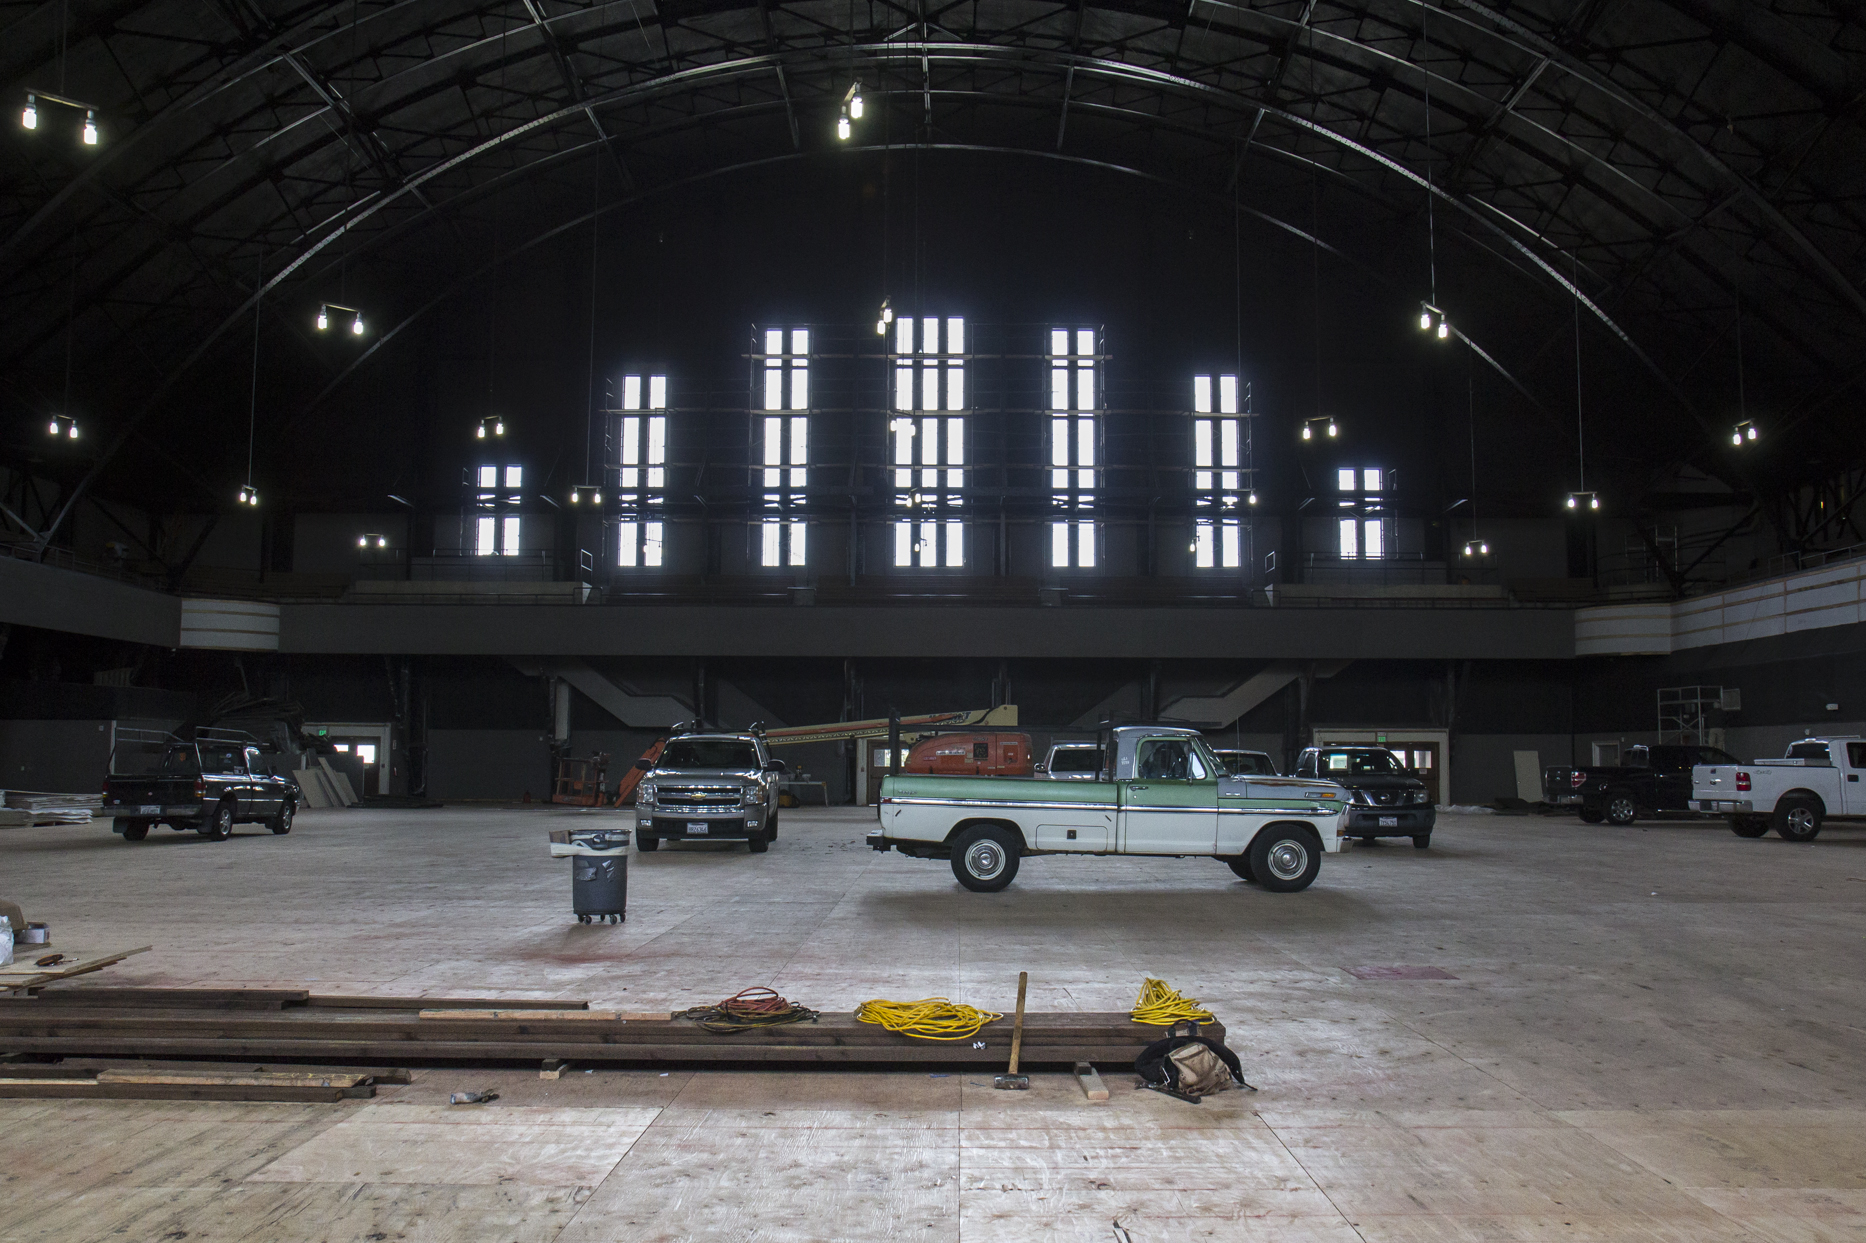 Workers are adapting the over 40,000 square feet area to its new purposes.